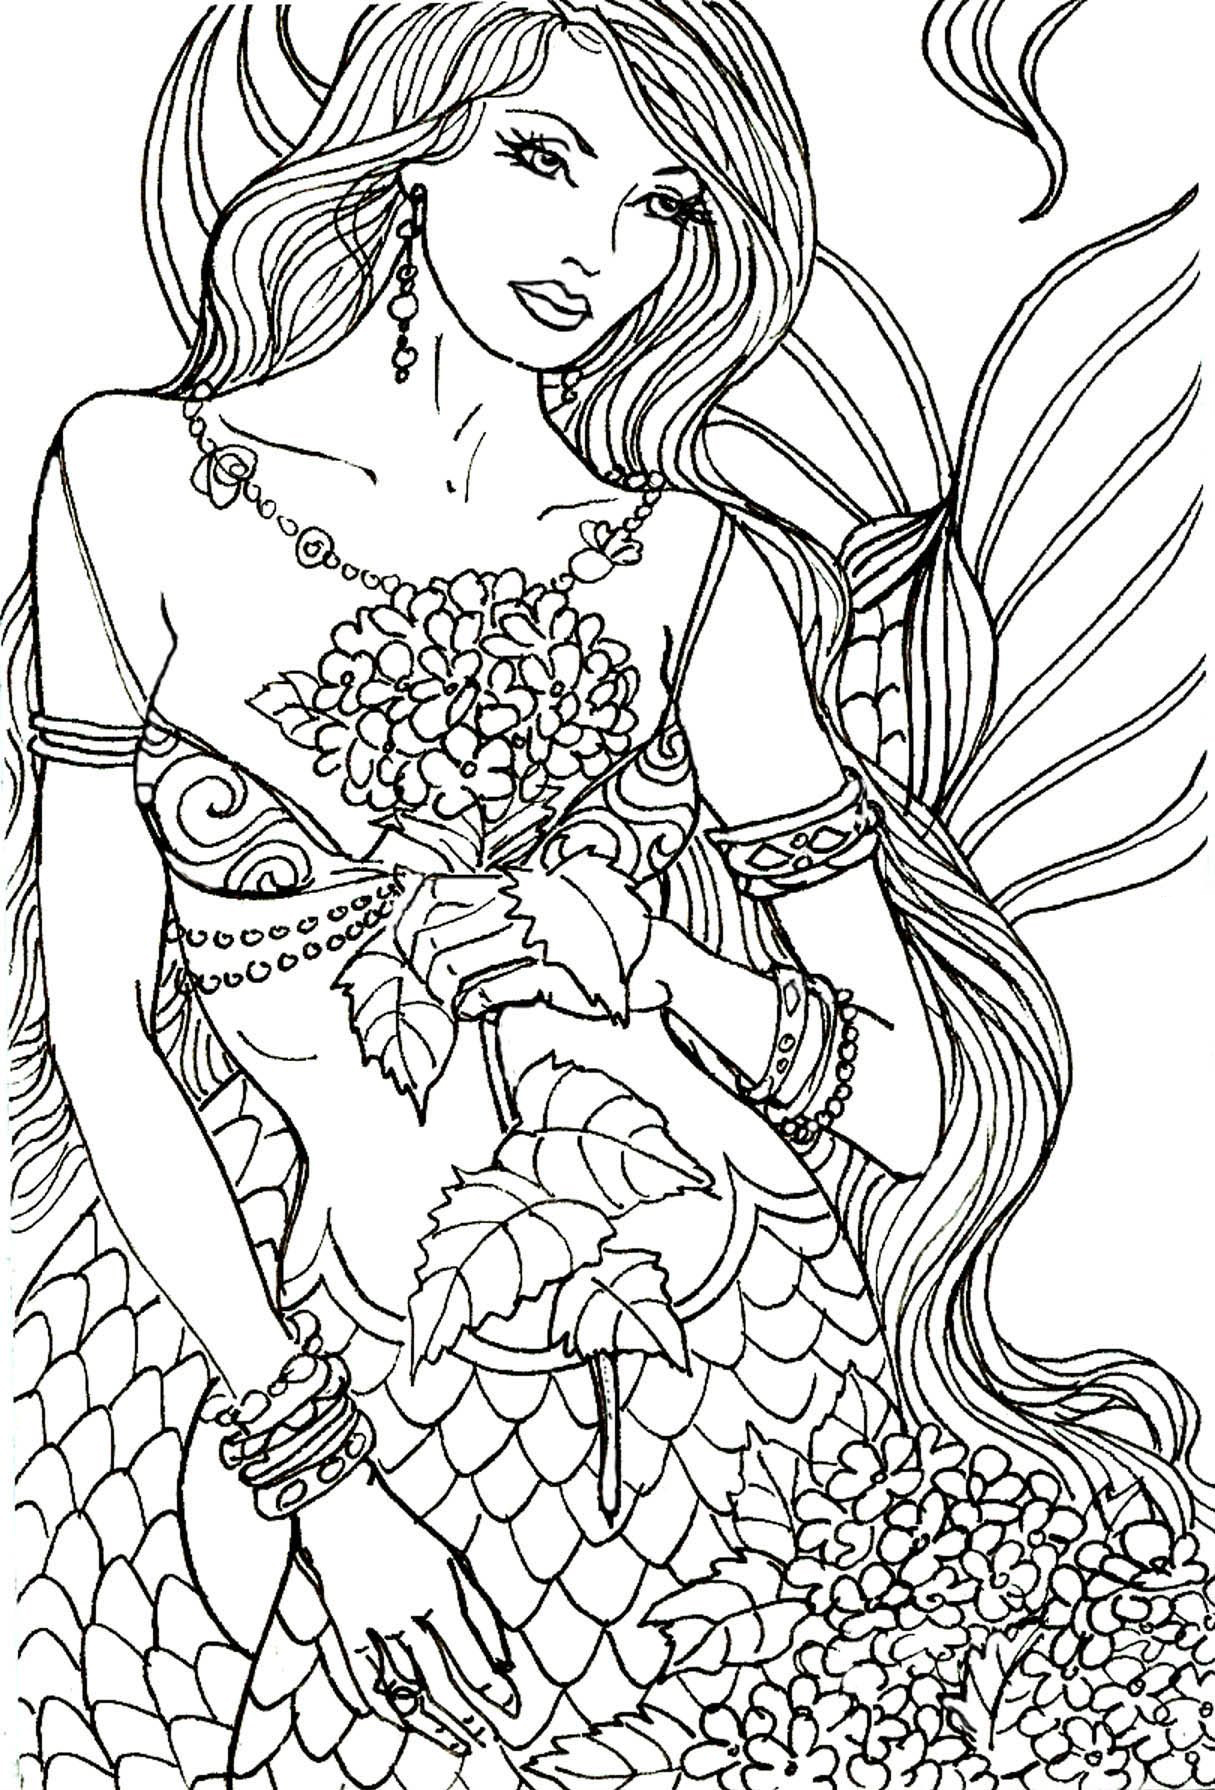 images Free Mermaid Coloring Pages mermaid coloring pages for adults